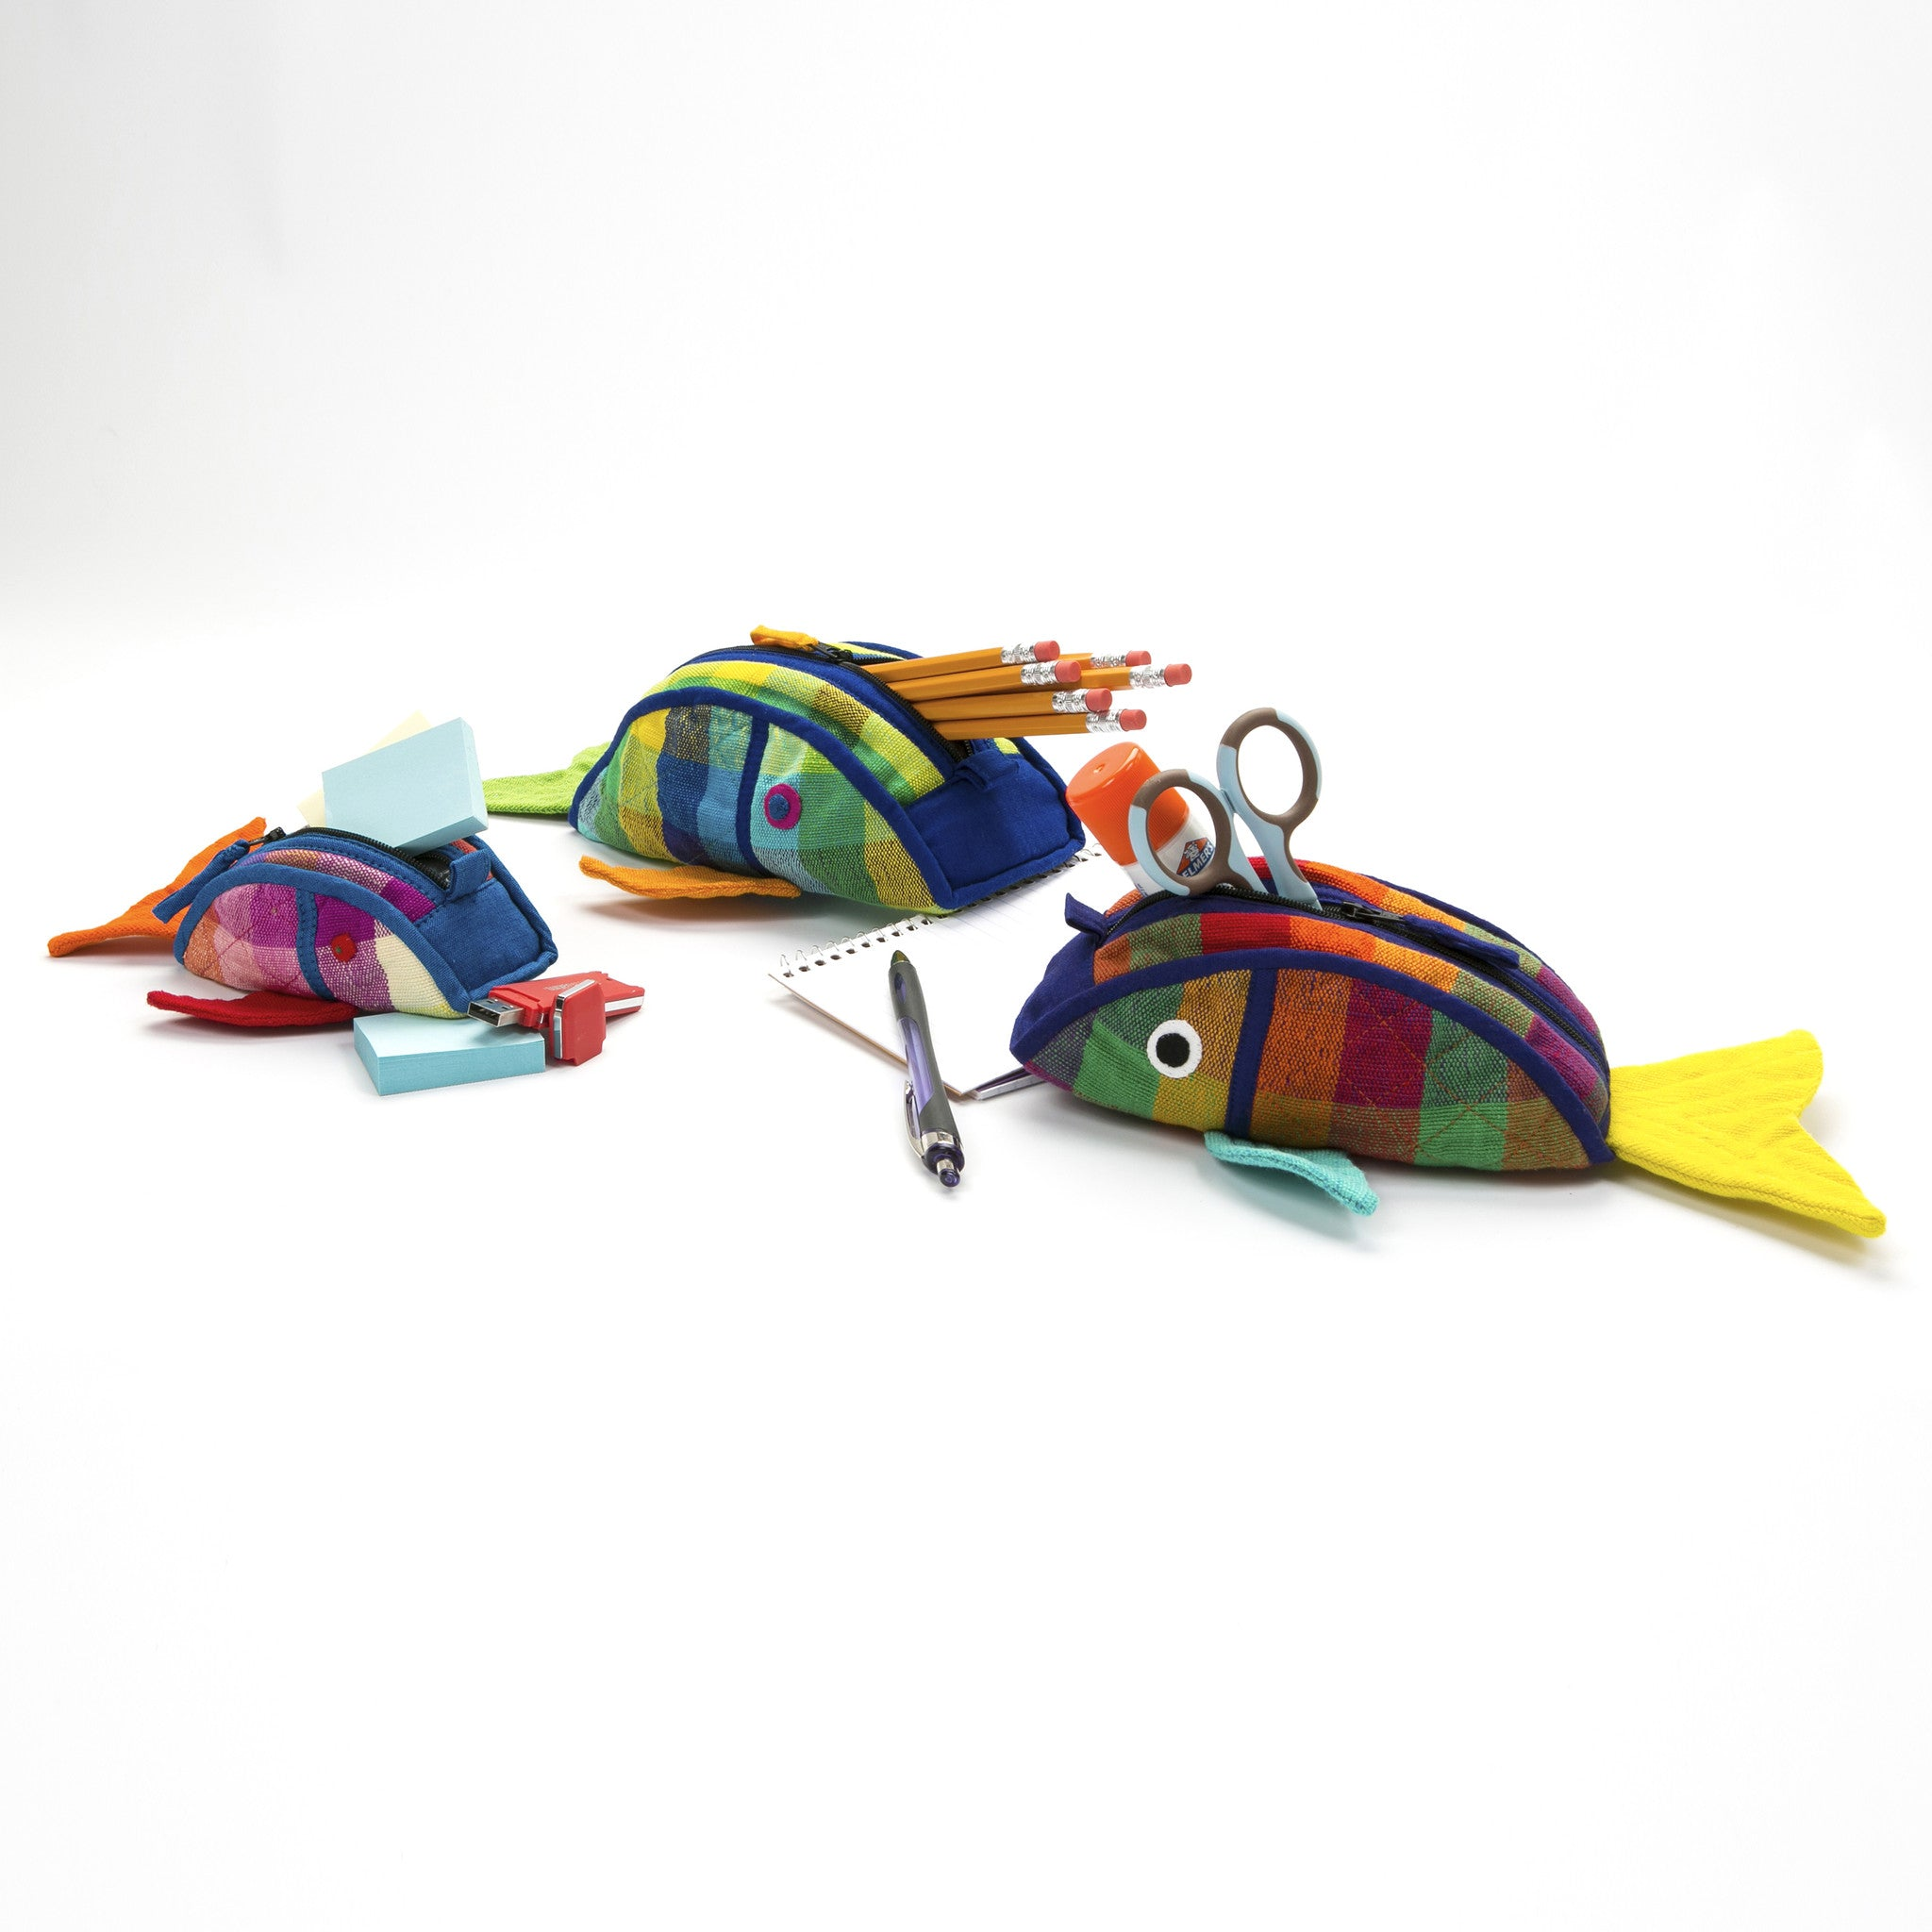 Fish Zip Pouch - Great for carrying school supplies! (sample fabric shown in small, medium, & large sizes)